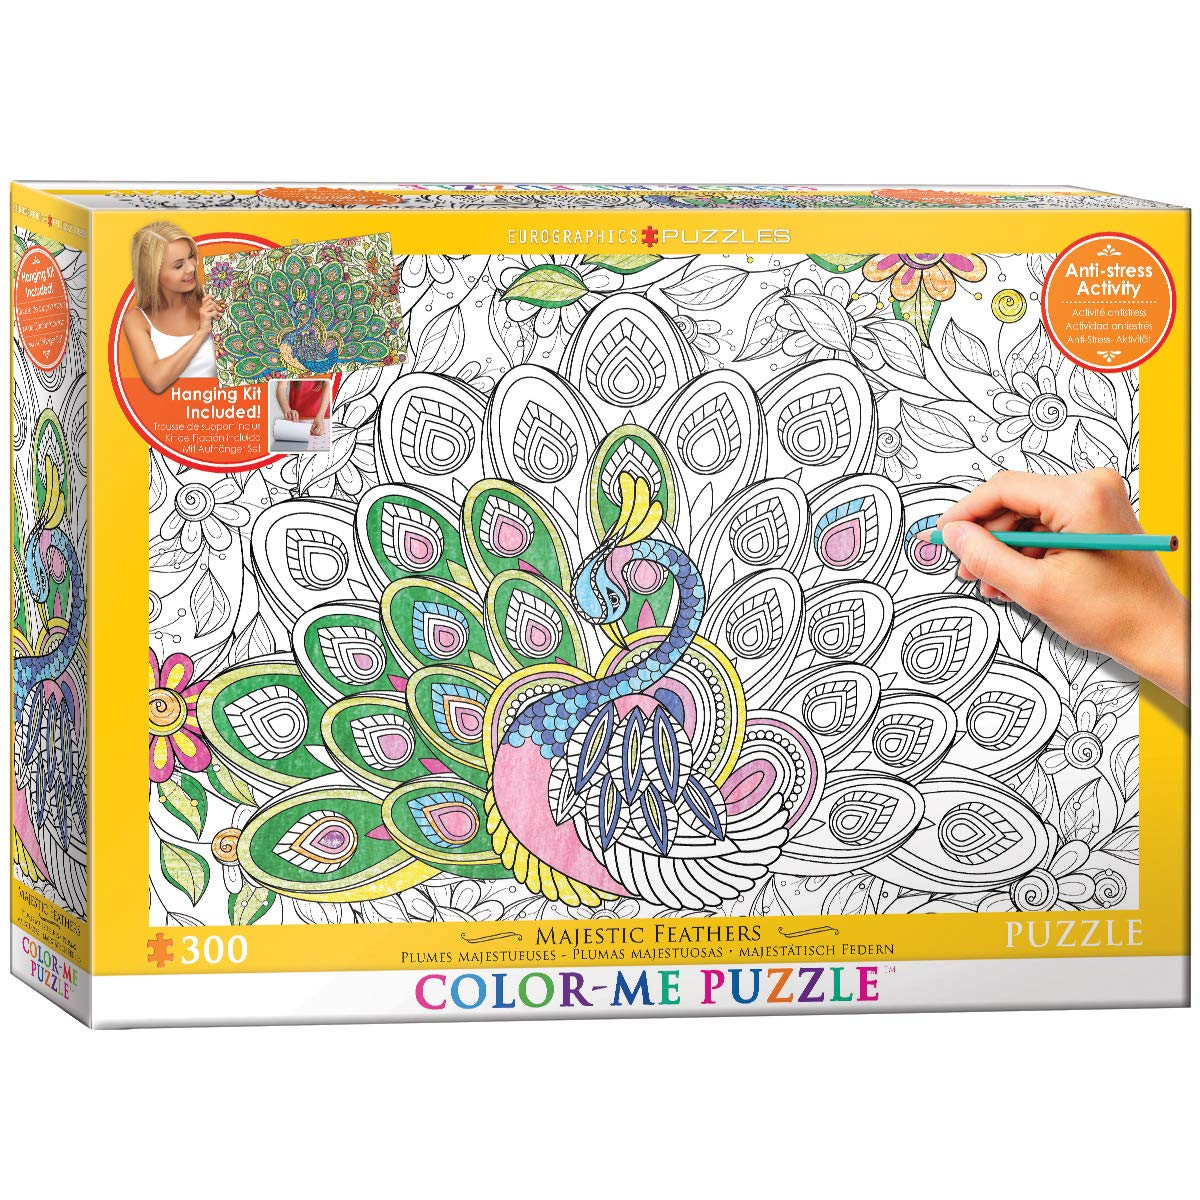 EuroGraphics Majestic Feathers Color Me Puzzle (300 Piece)